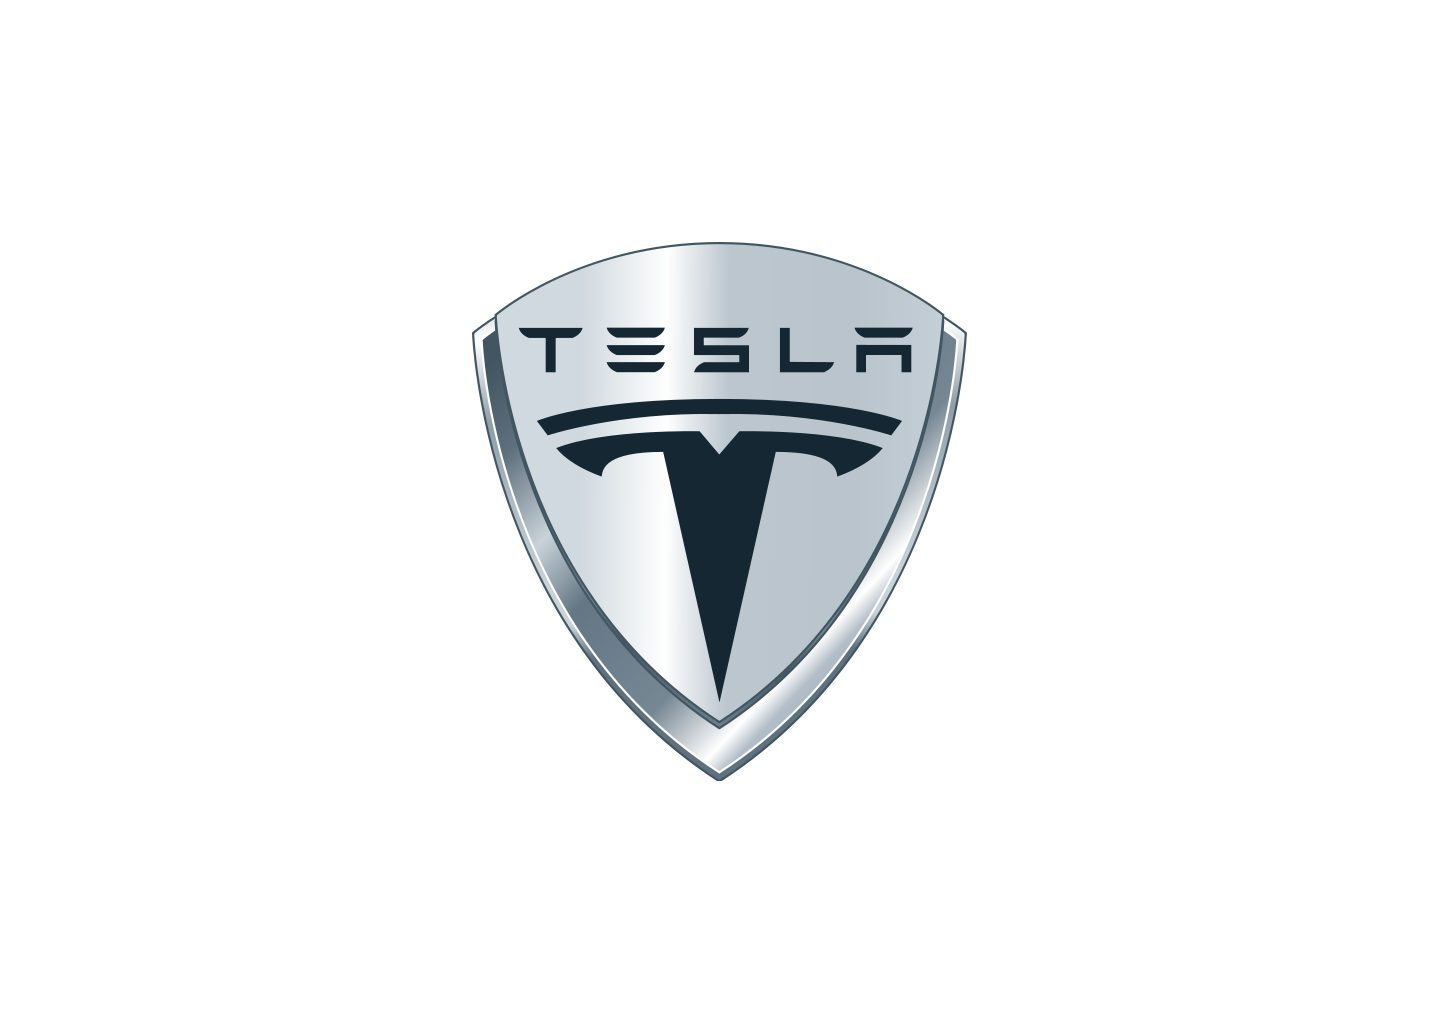 Tesla Logo on how an electric motor works